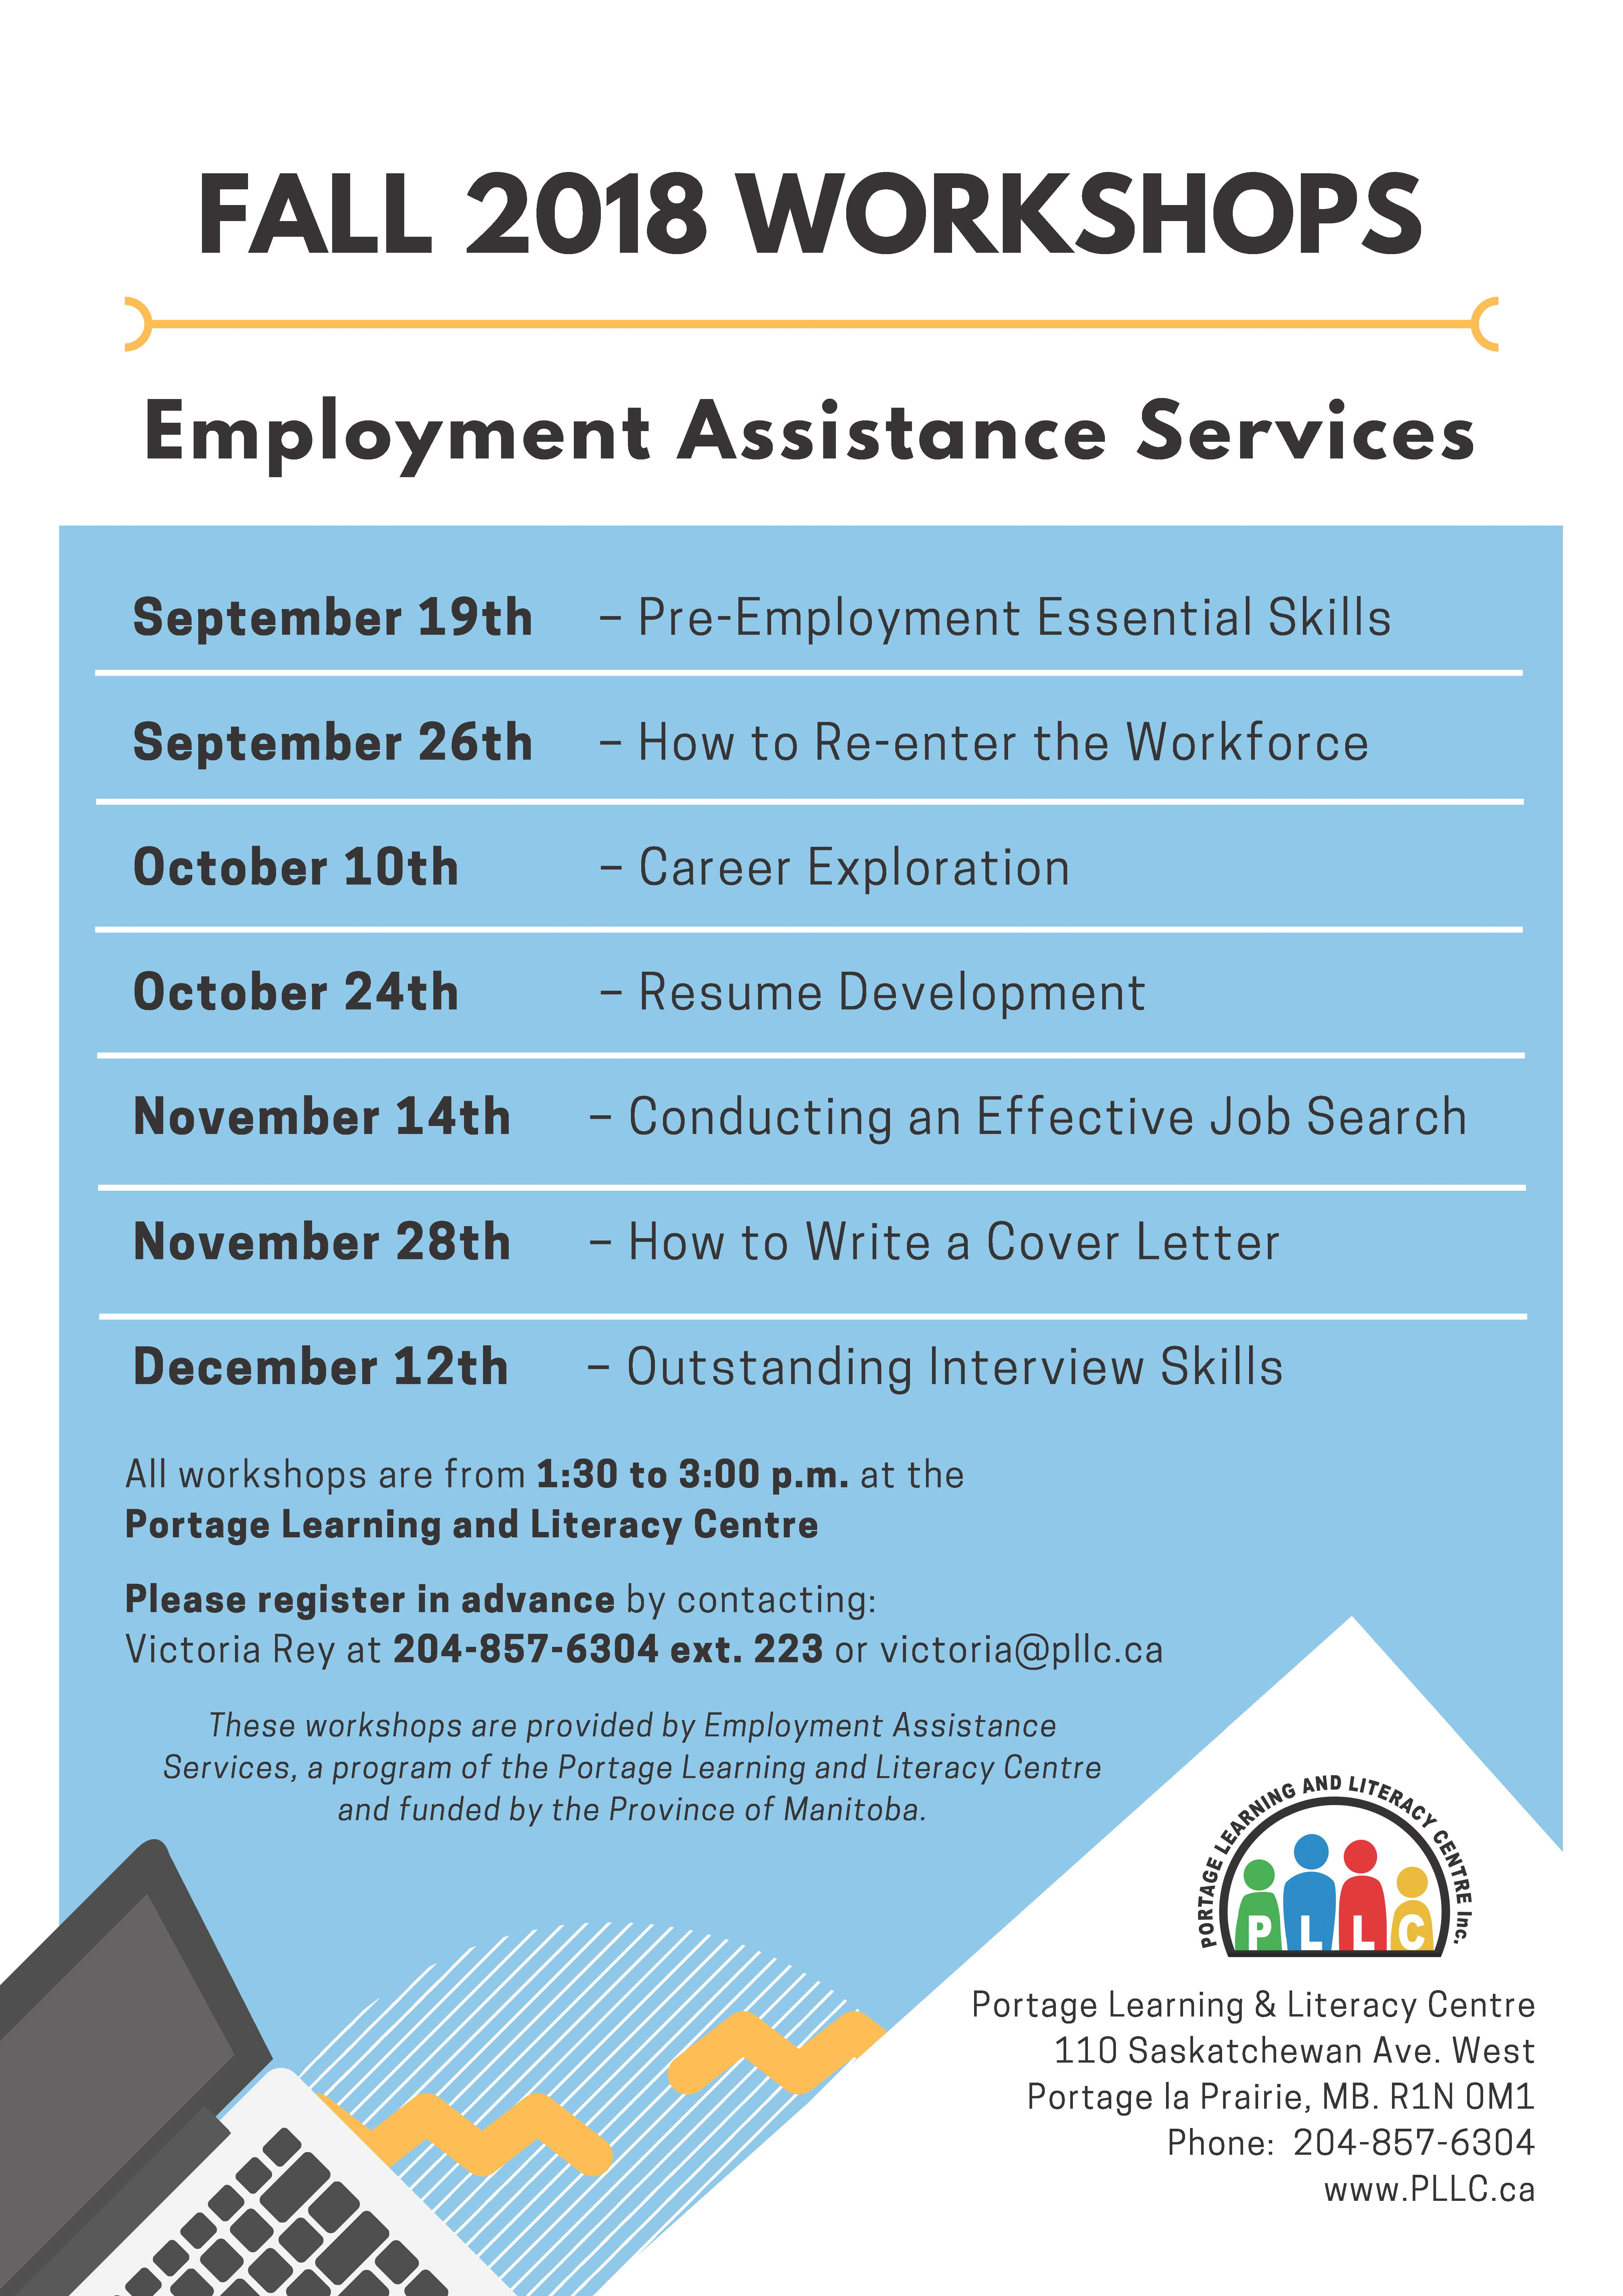 Employment Assistance Services   Portage Learning and Literacy Centre